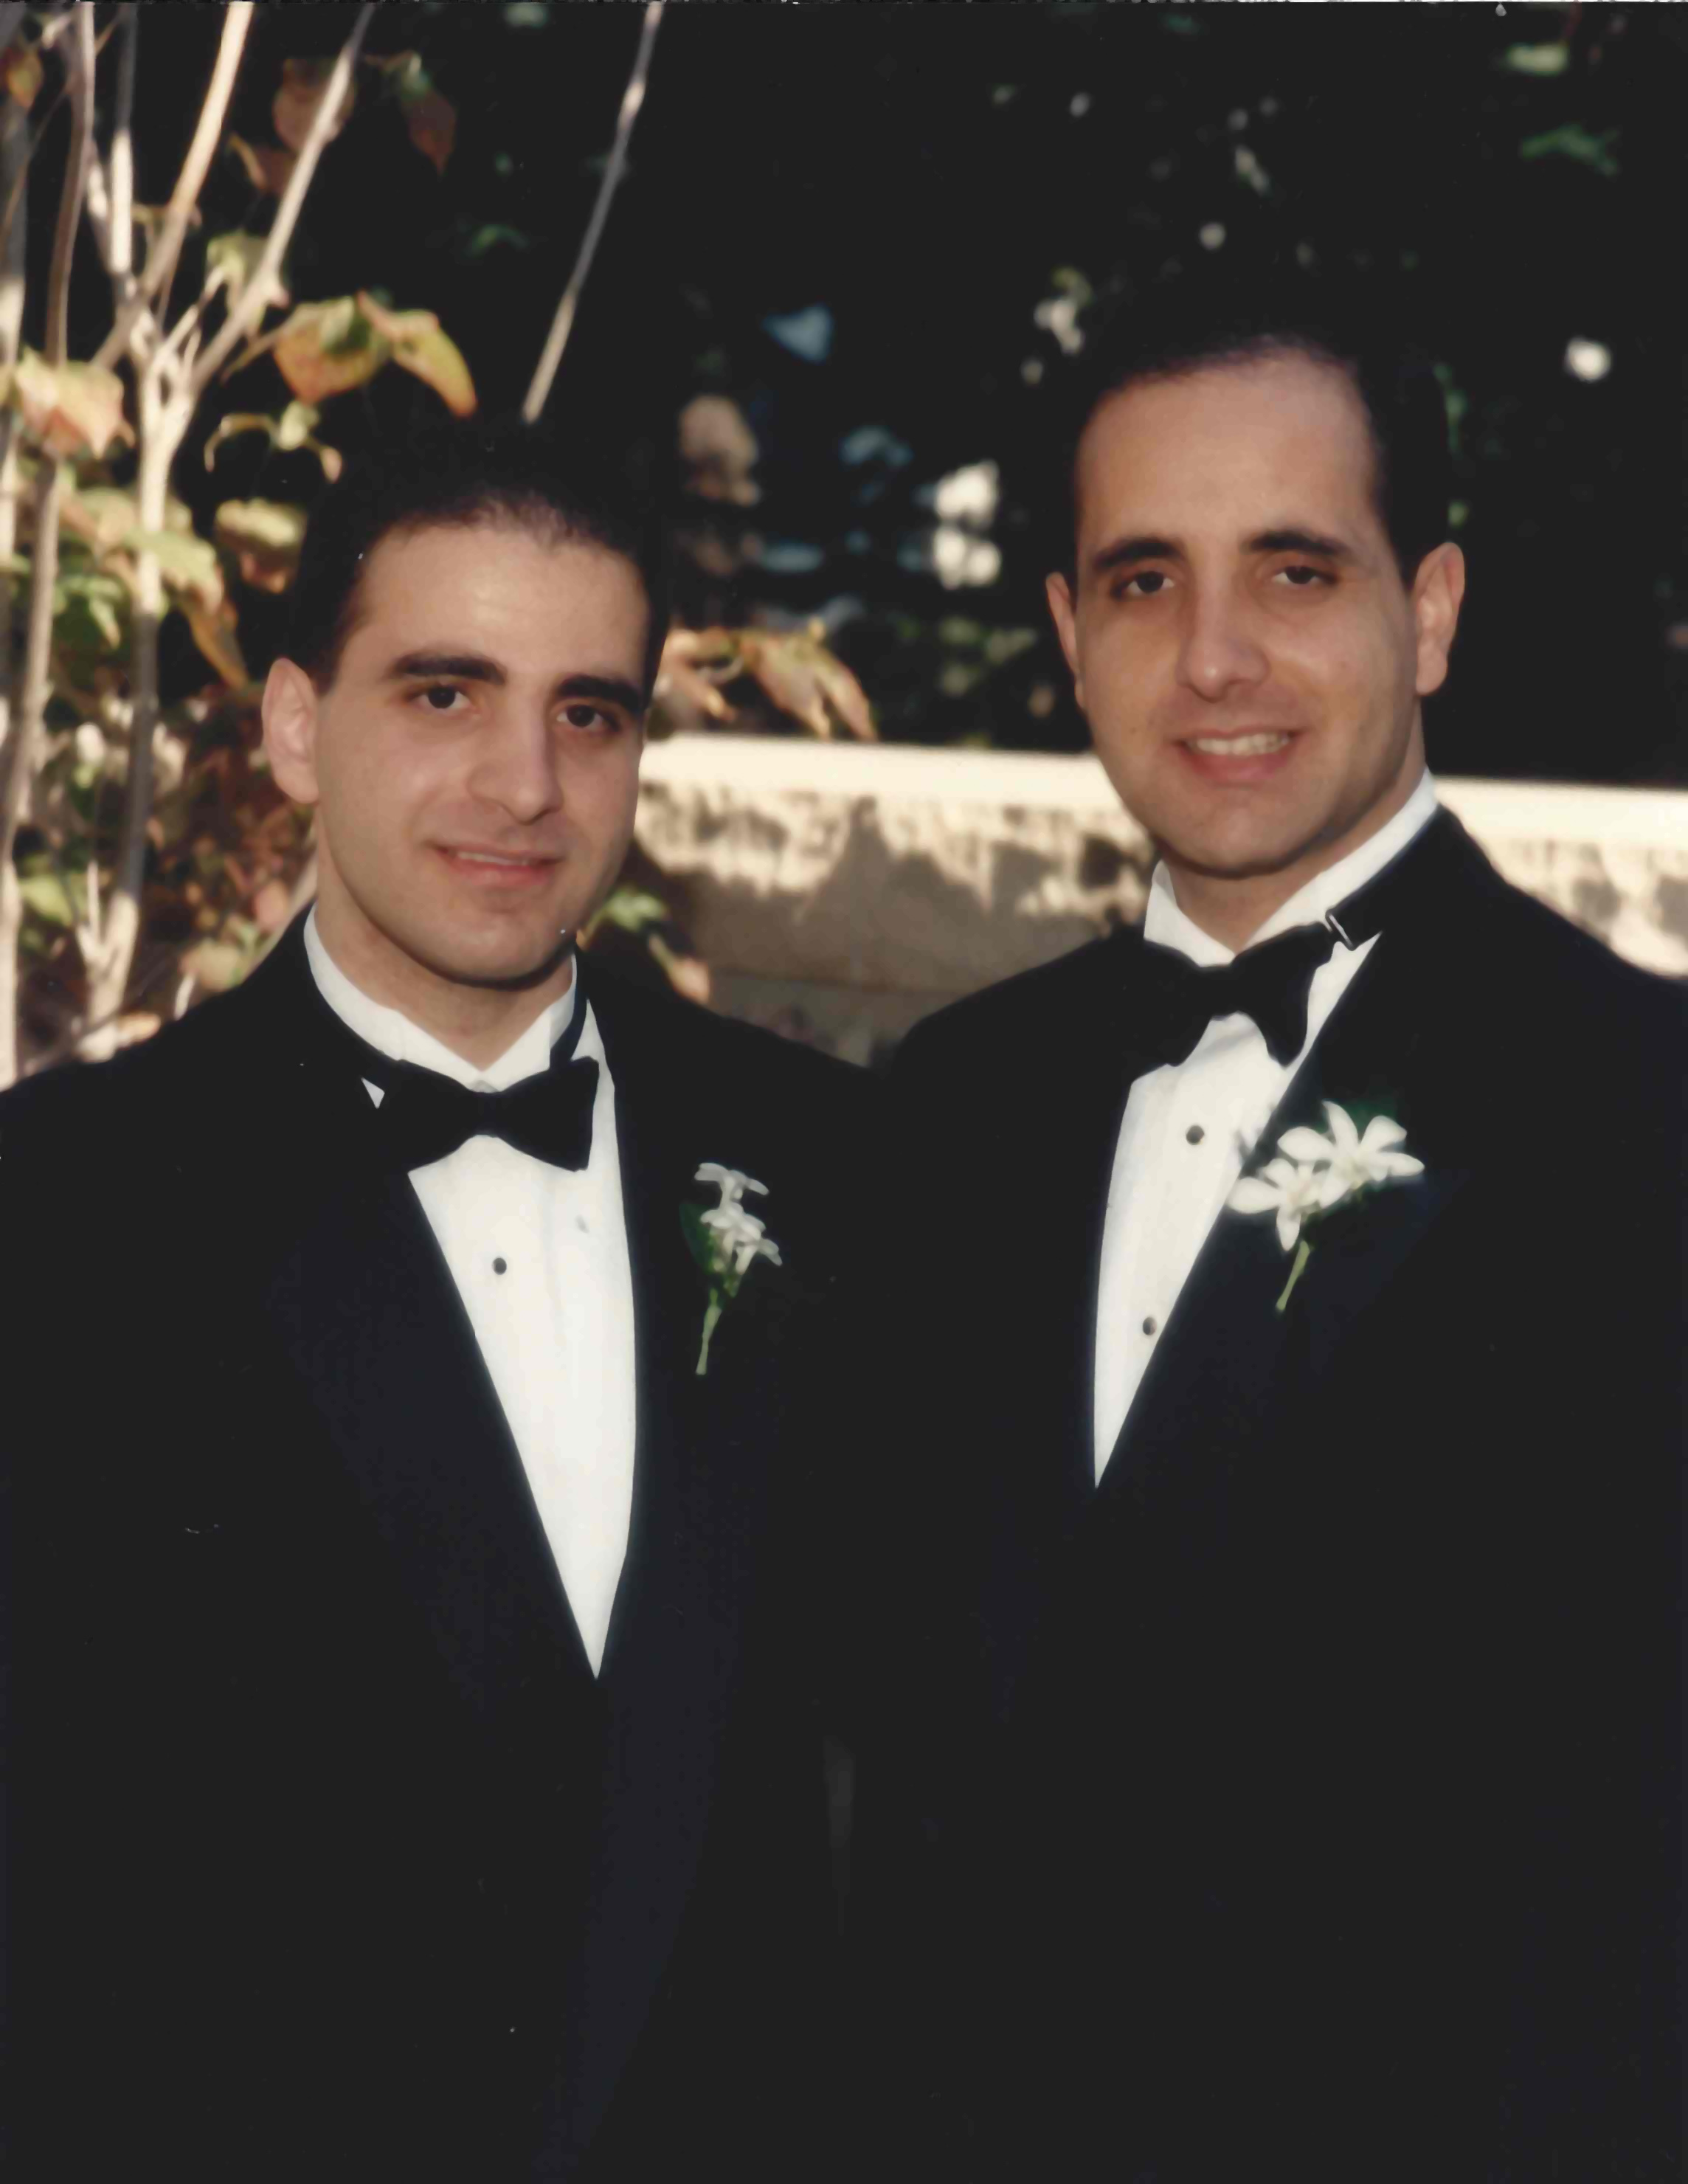 laith and qais at laiths wedding.jpg